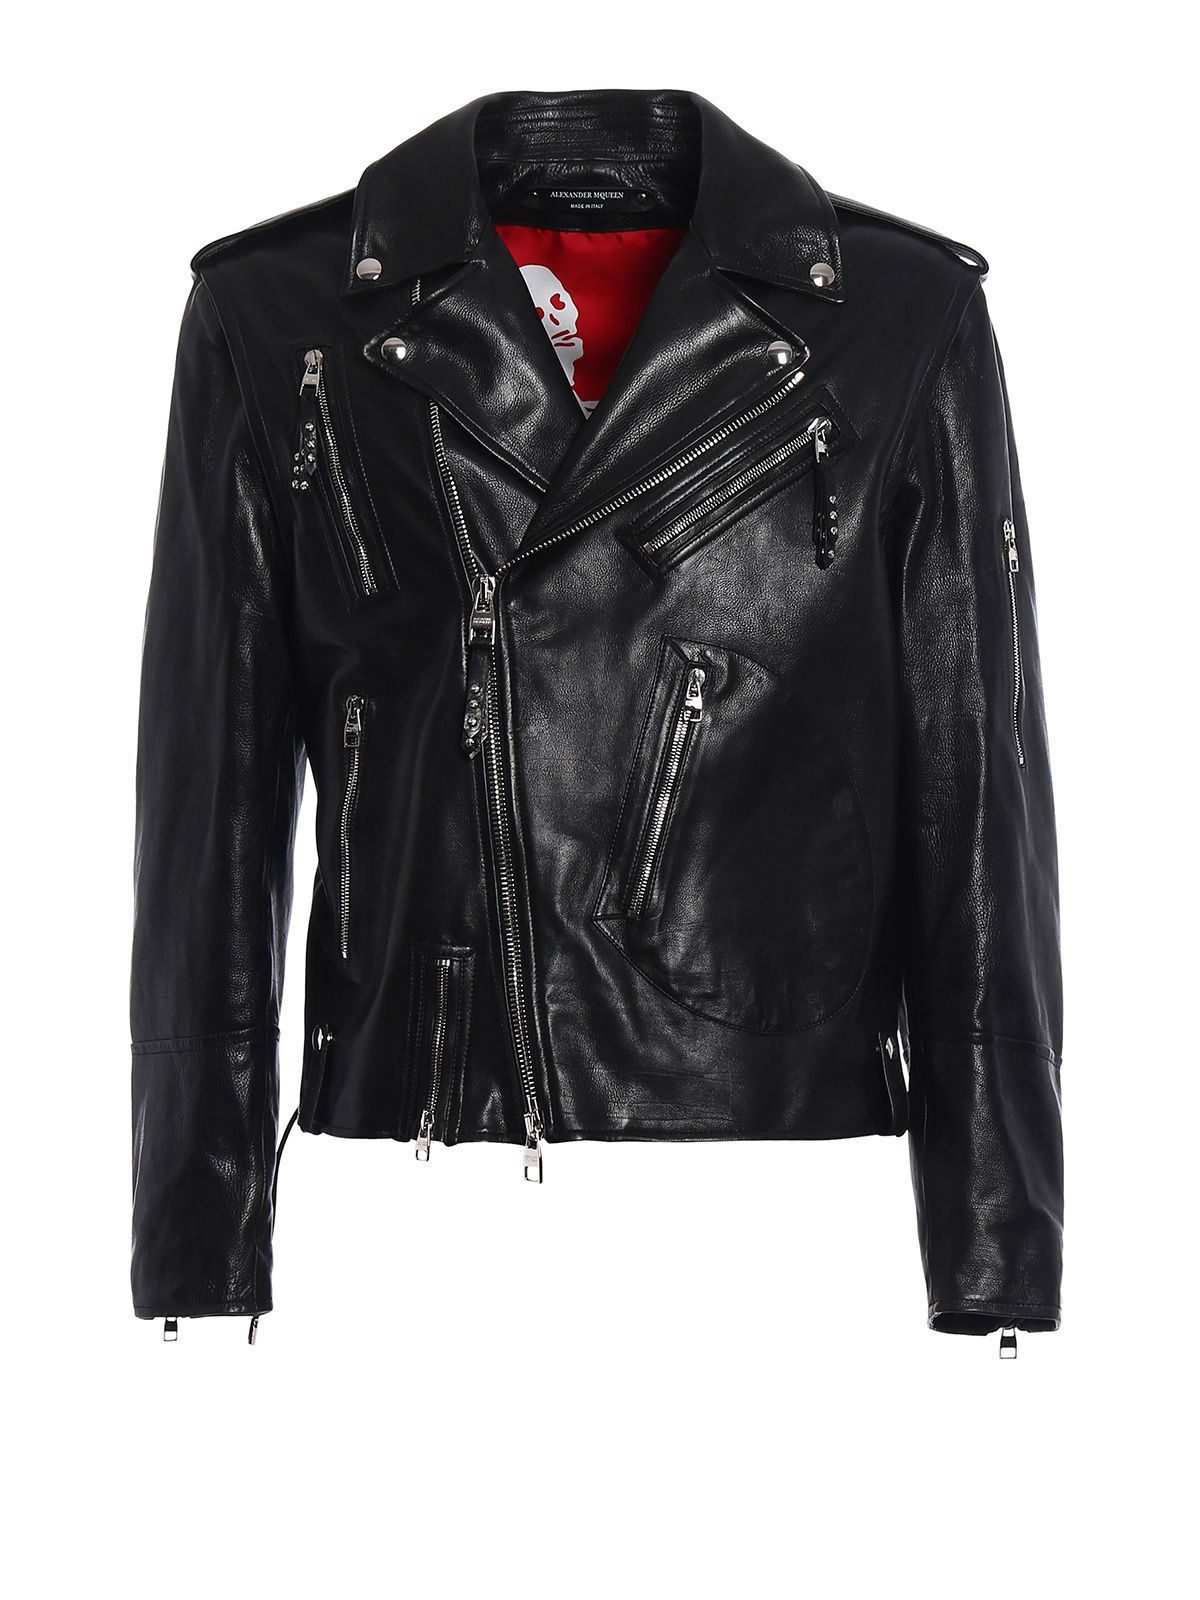 COATS & JACKETS - Jackets Alexander McQueen Free Shipping Amazing Price NXsUP6KrNd